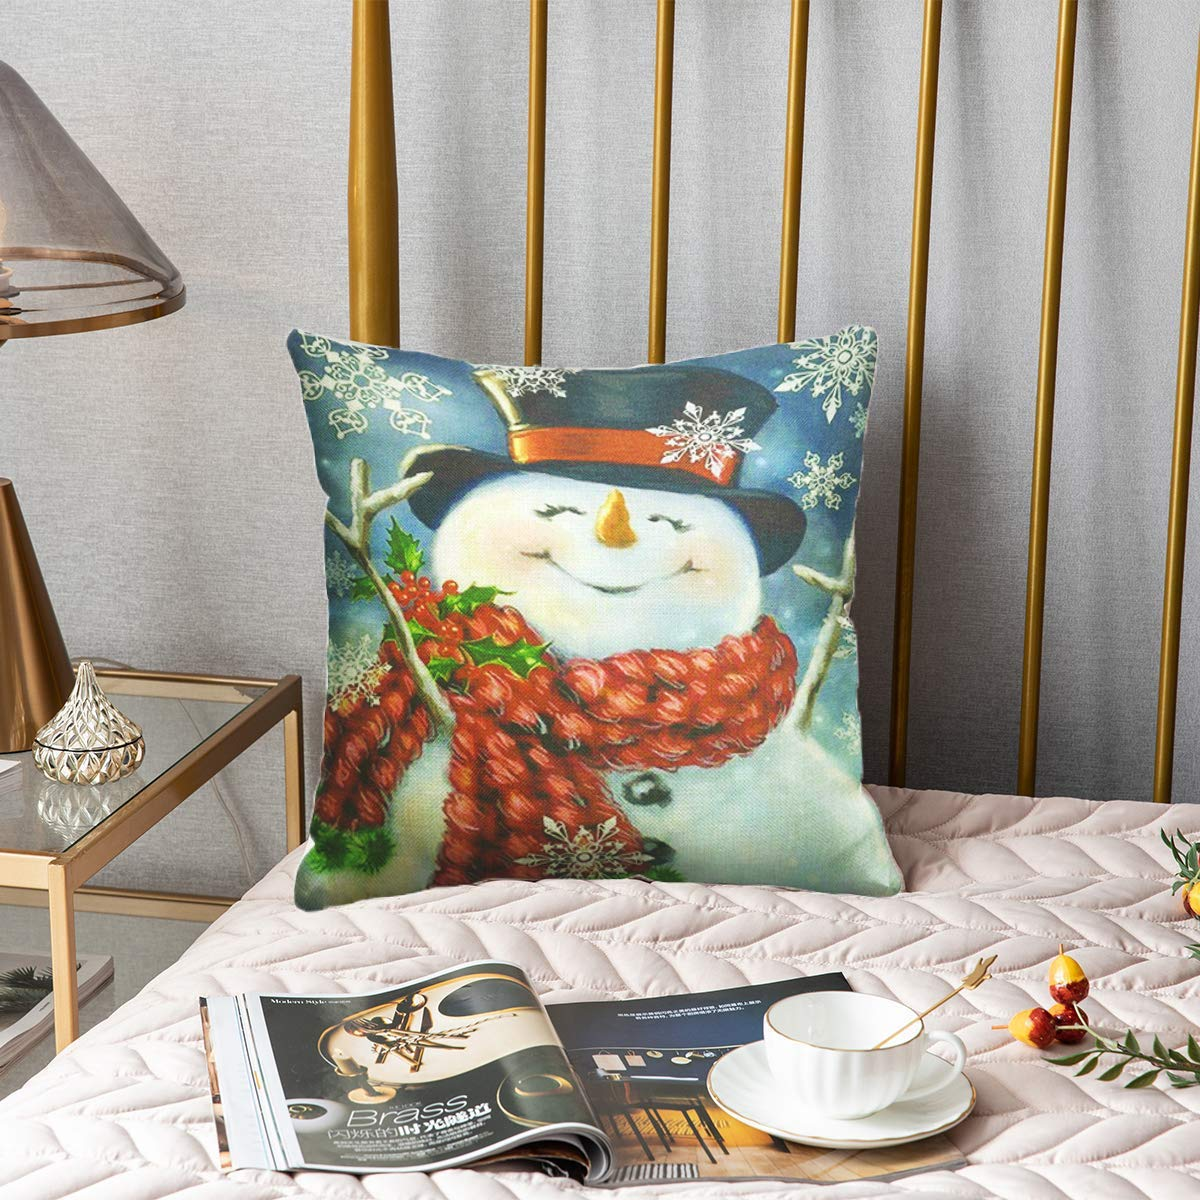 TIGERNU Throw Pillow Covers 18x18 inch (45x45cm) Linen Pillowcases Christmas Decorations Winter Snow Auto Church Cushion Cover for Couch Bed Sofa Car- Set of 4